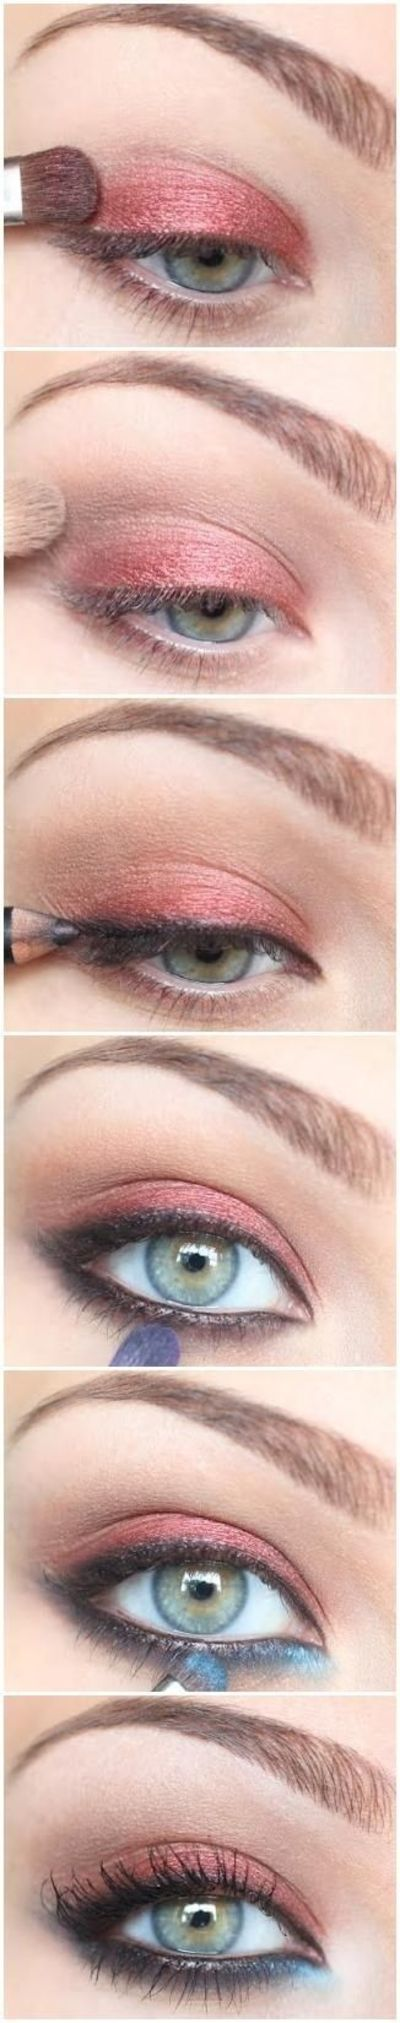 eyeshadow: coral shadow on top, light blue in the lower inner corner, the PERFECT way to make blue eyes pop!